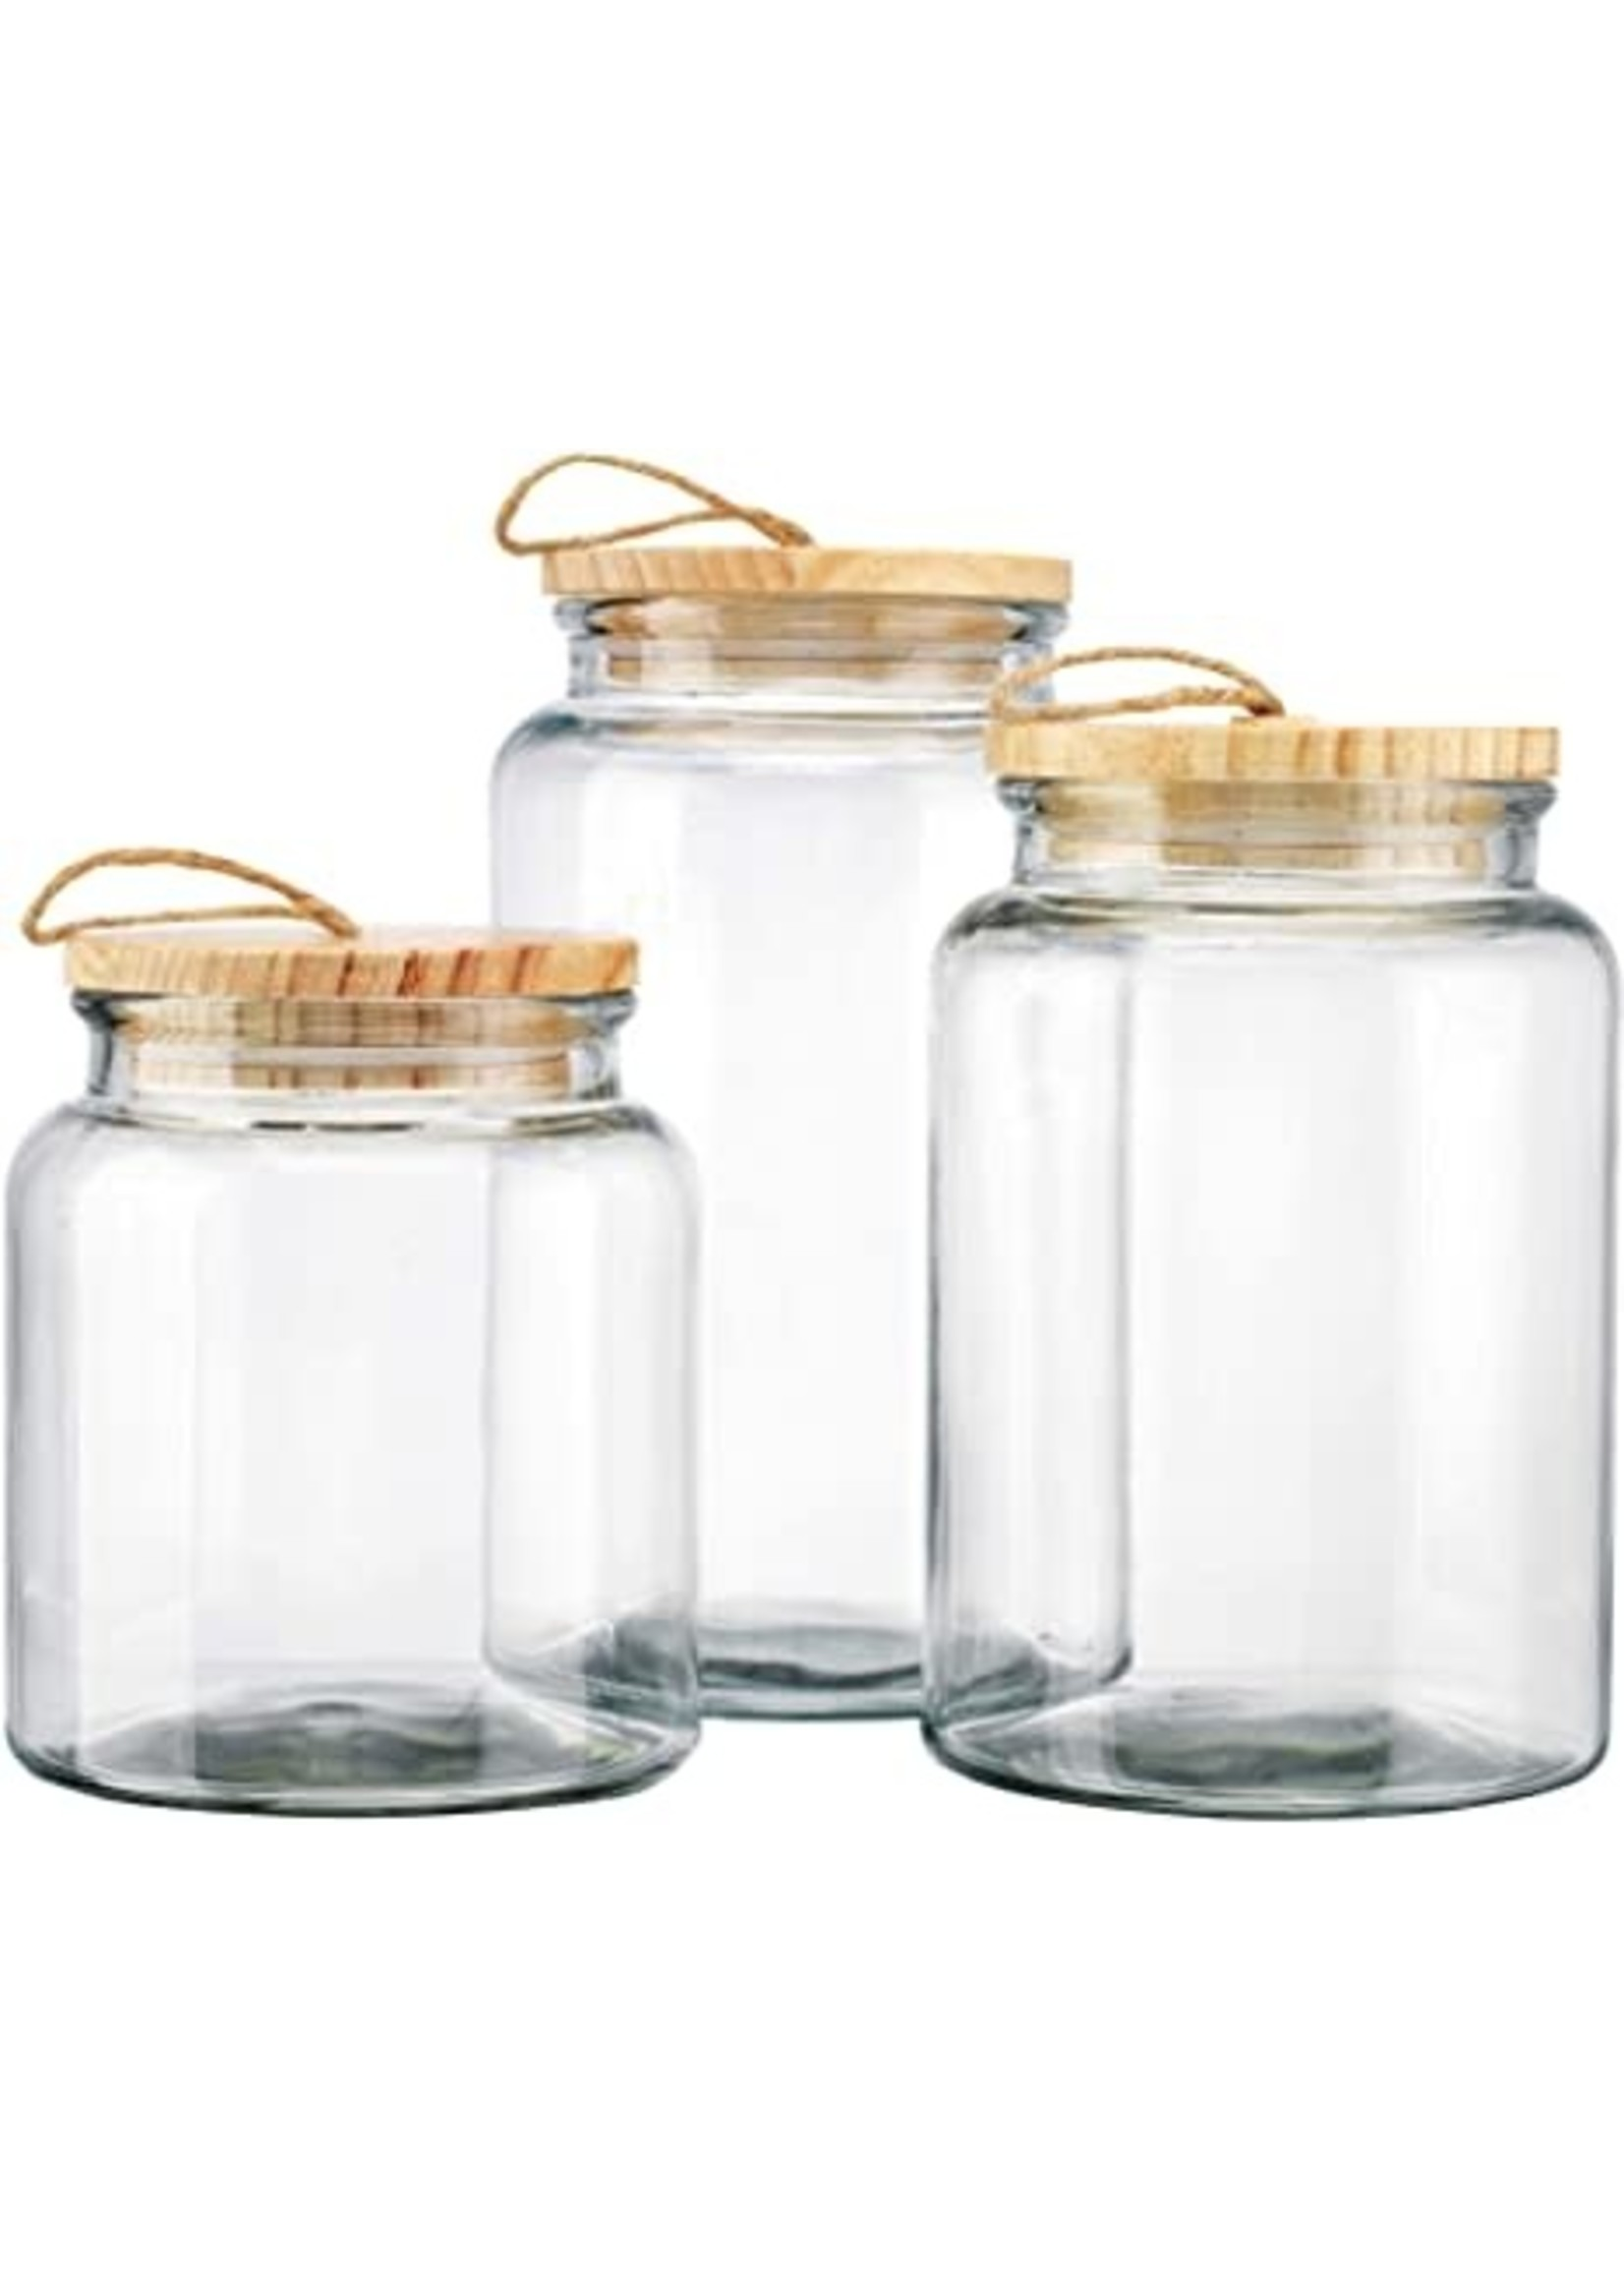 Glass Cannisters wood tops Set 3